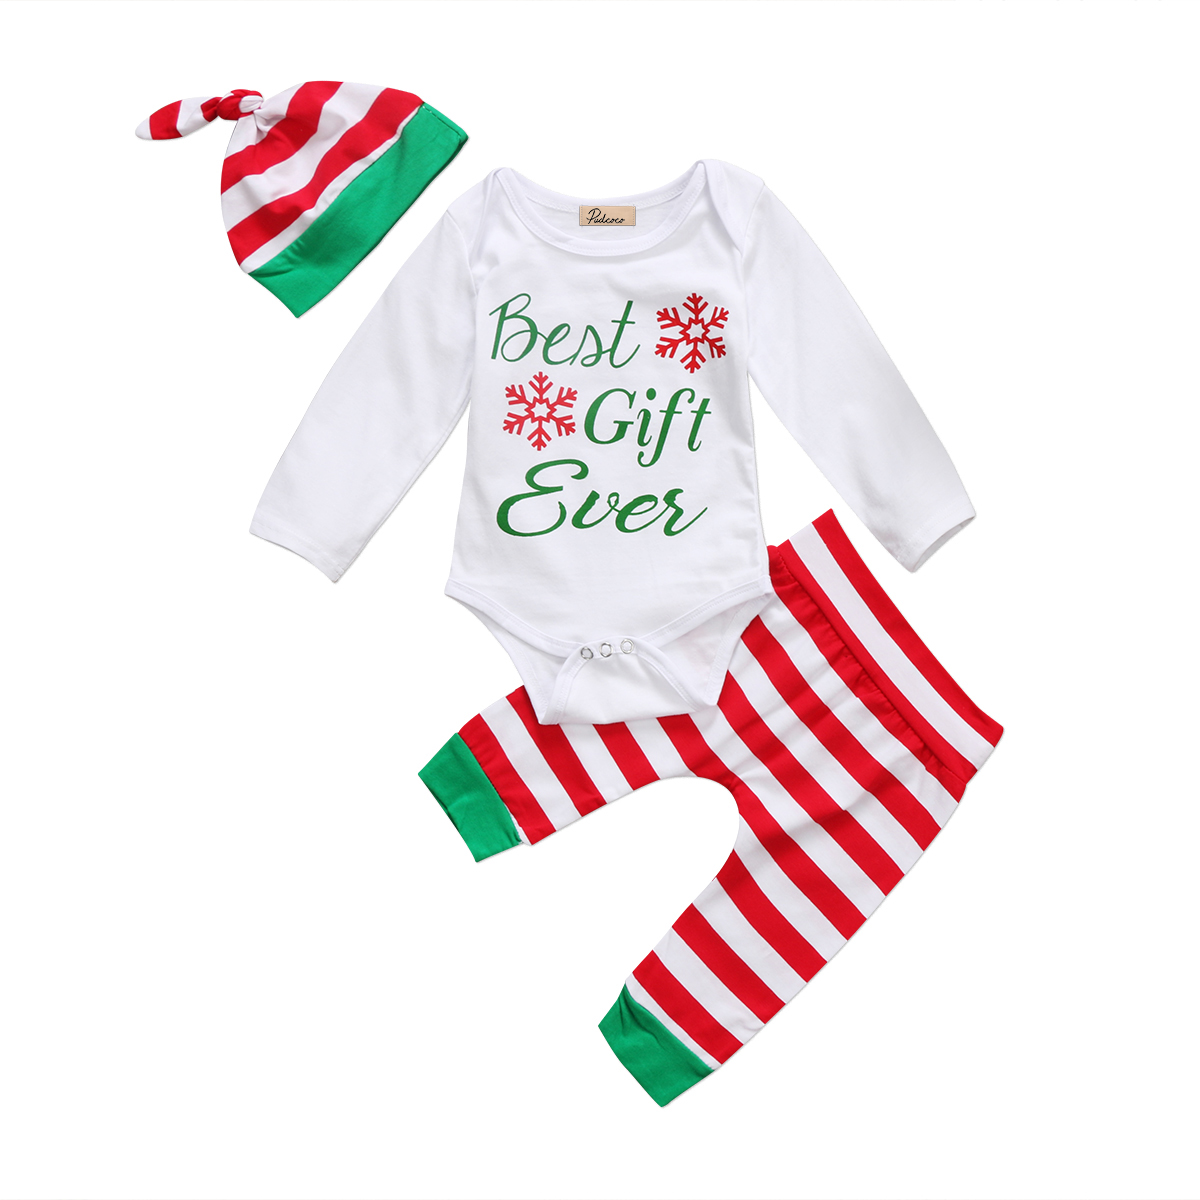 2PCS Baby Christmas Clothing Sets Newborn Baby Boys Girls Tops Long Sleeve Romper Striped Pants Hat Outfits Set Xmas Clothes battery capacity tester resistance testing mobile power lithium lead acid battery can be 18650 serial line 20w